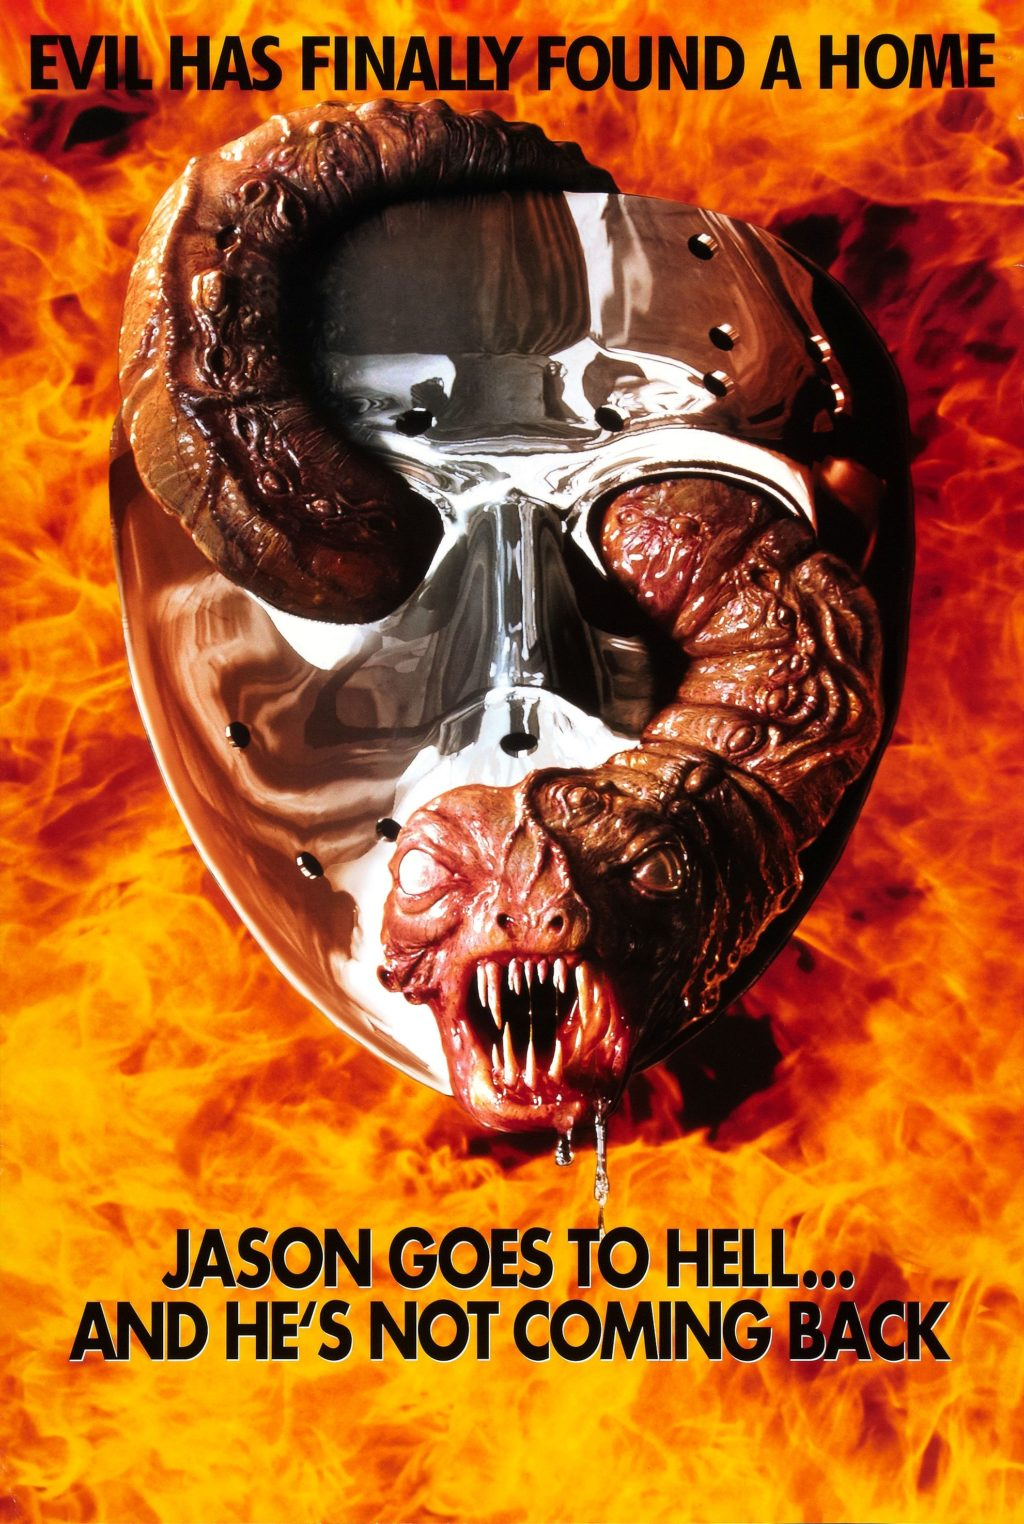 jason_goes_to_hell_poster_01